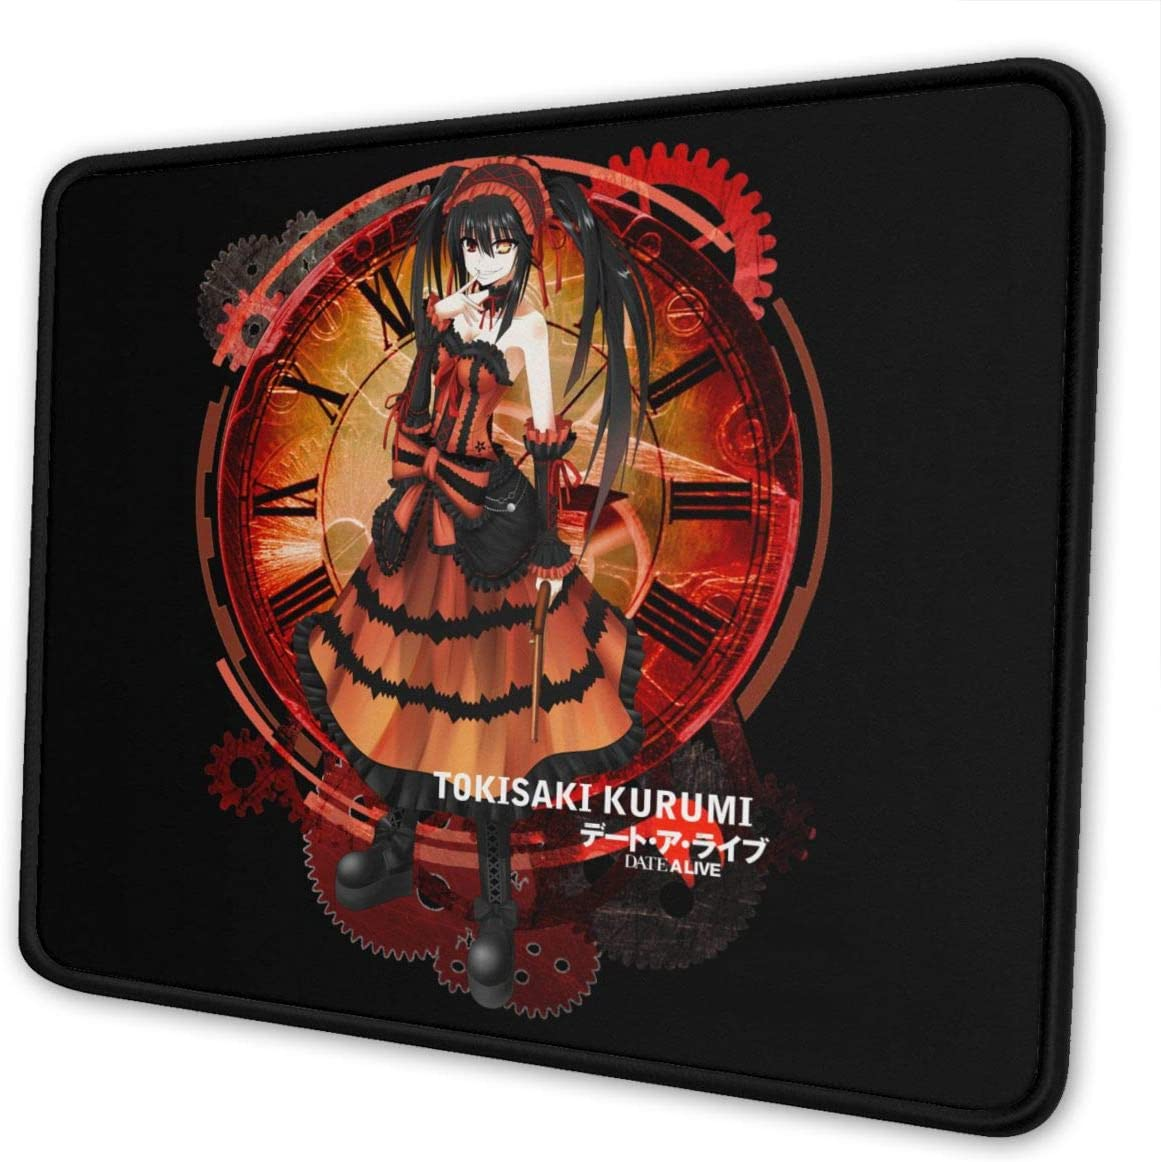 Design Mouse Pad Non Slip Anime RWBY Team Gaming Mouse Pad with Stitched Edge Computer PC Mousepad Neoprene Base for Office Home